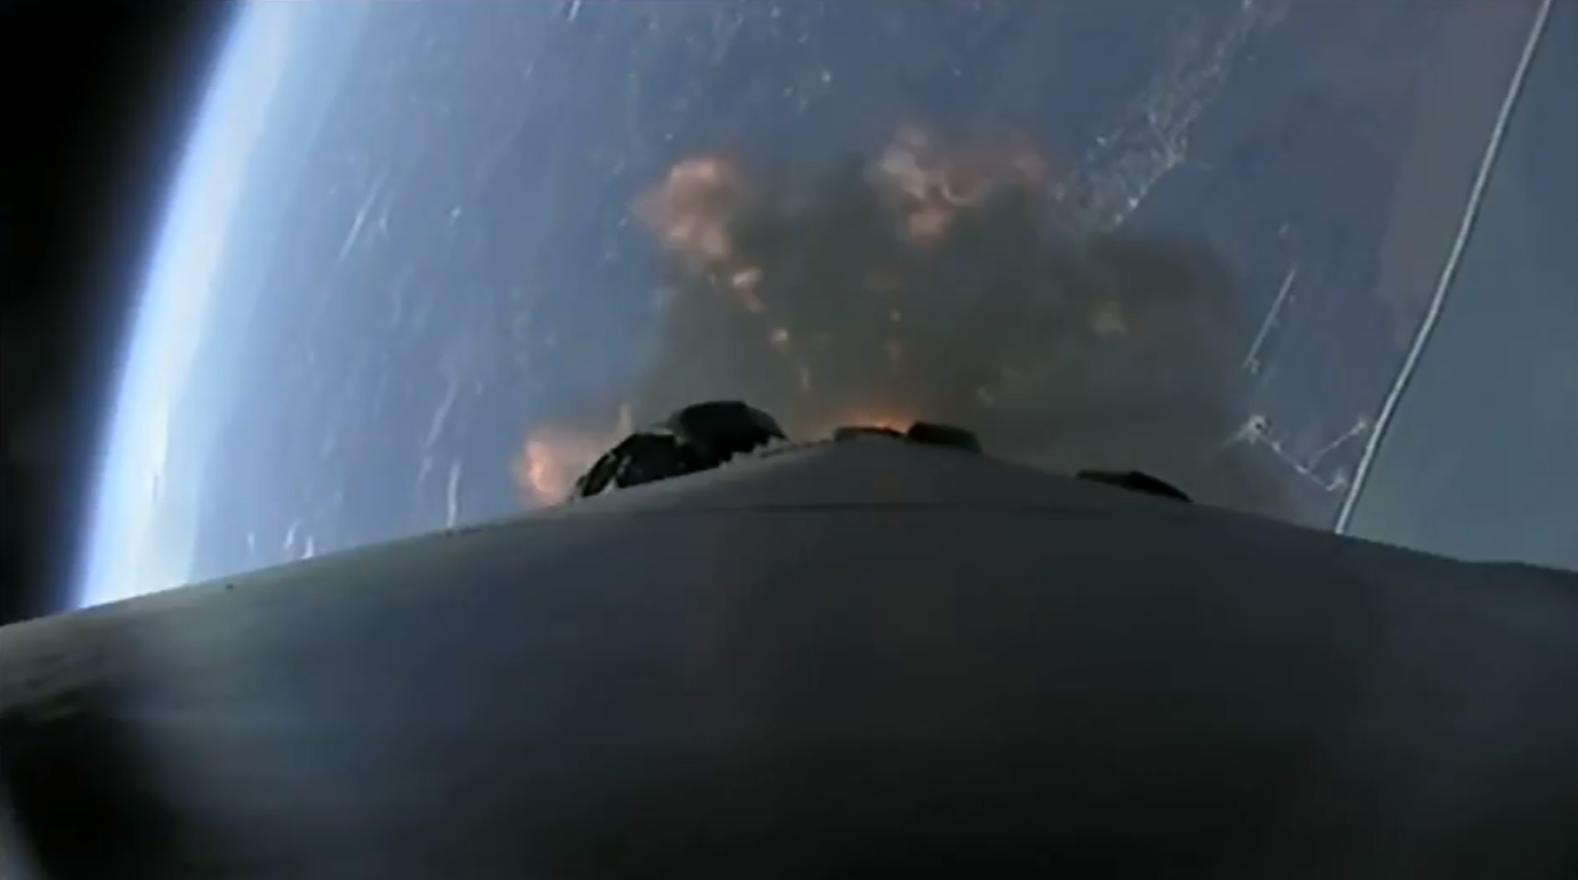 Falcon 9 B1050 CRS-16 launch (SpaceX) 2